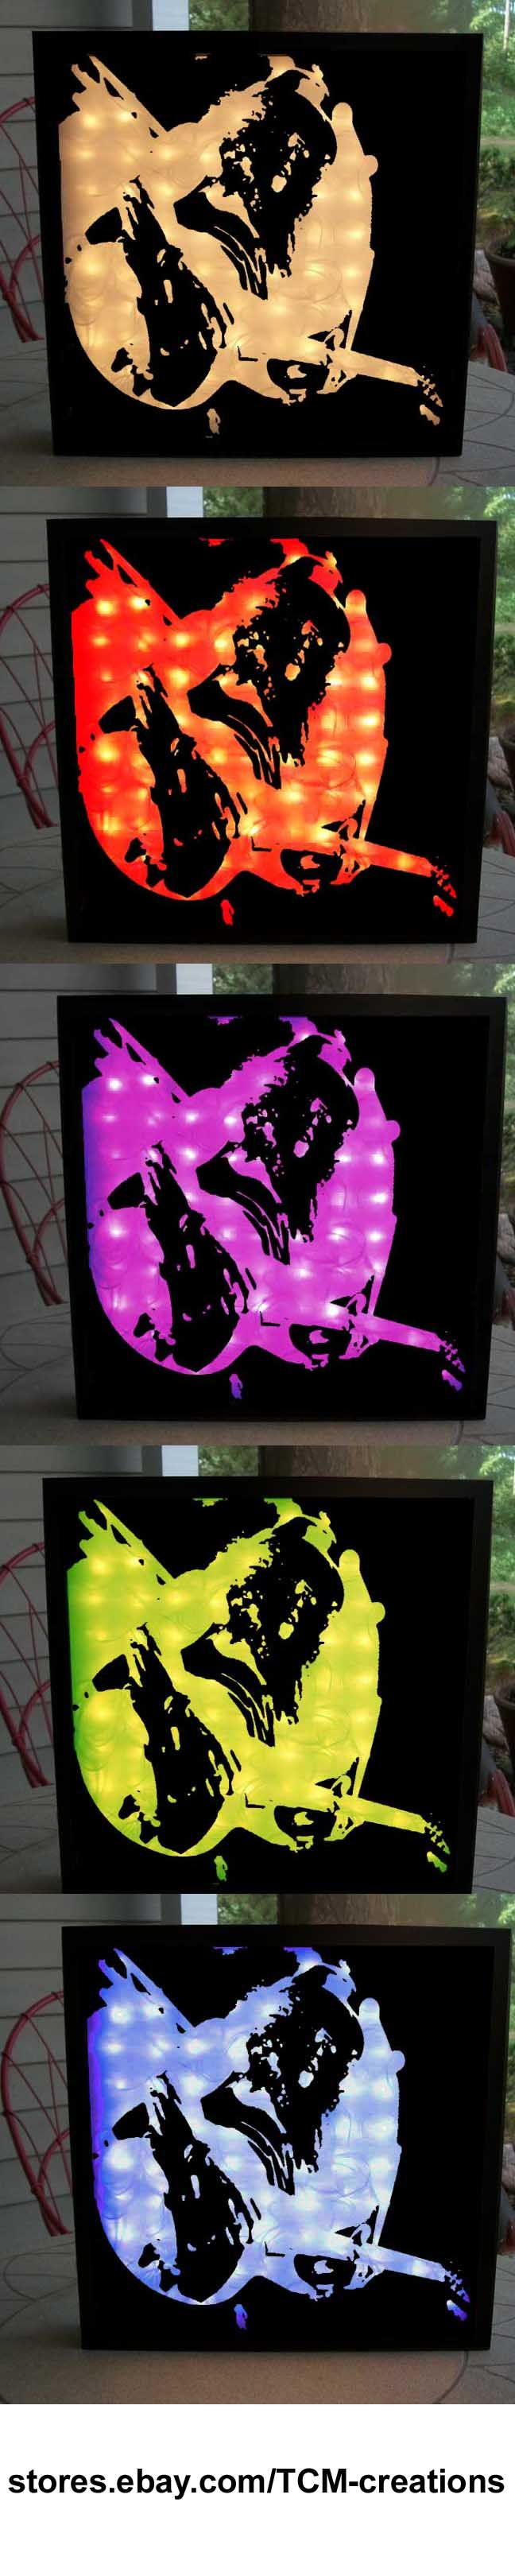 Guns n roses critical solution - Guns N Roses Shadow Boxes With Led Lighting Appetite For Destruction Spaghetti Incident